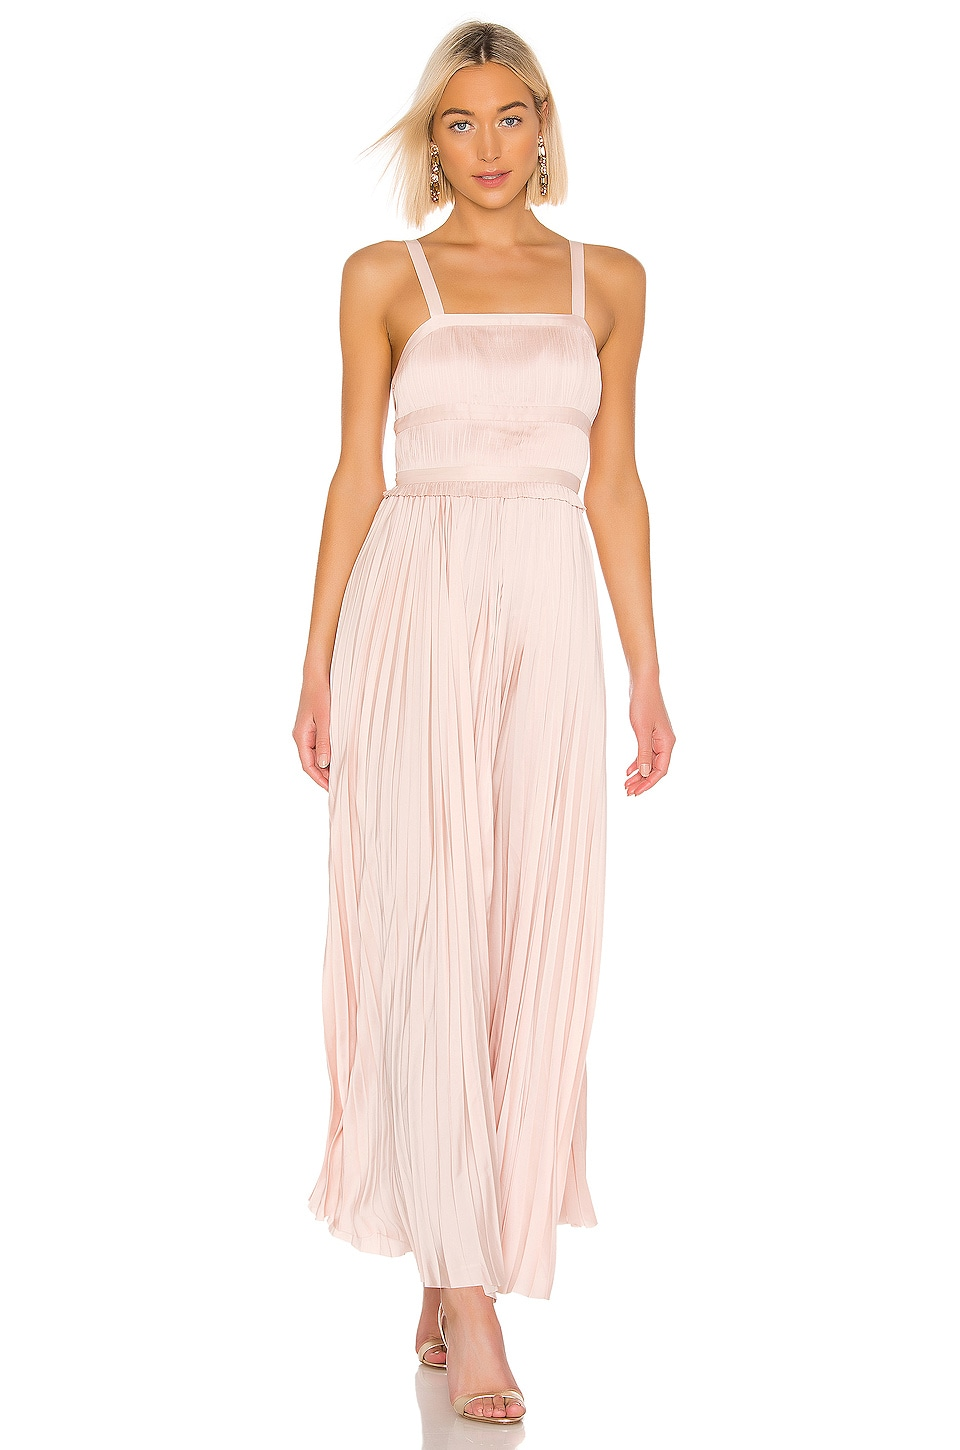 Ulla Johnson Imani Gown in Peony